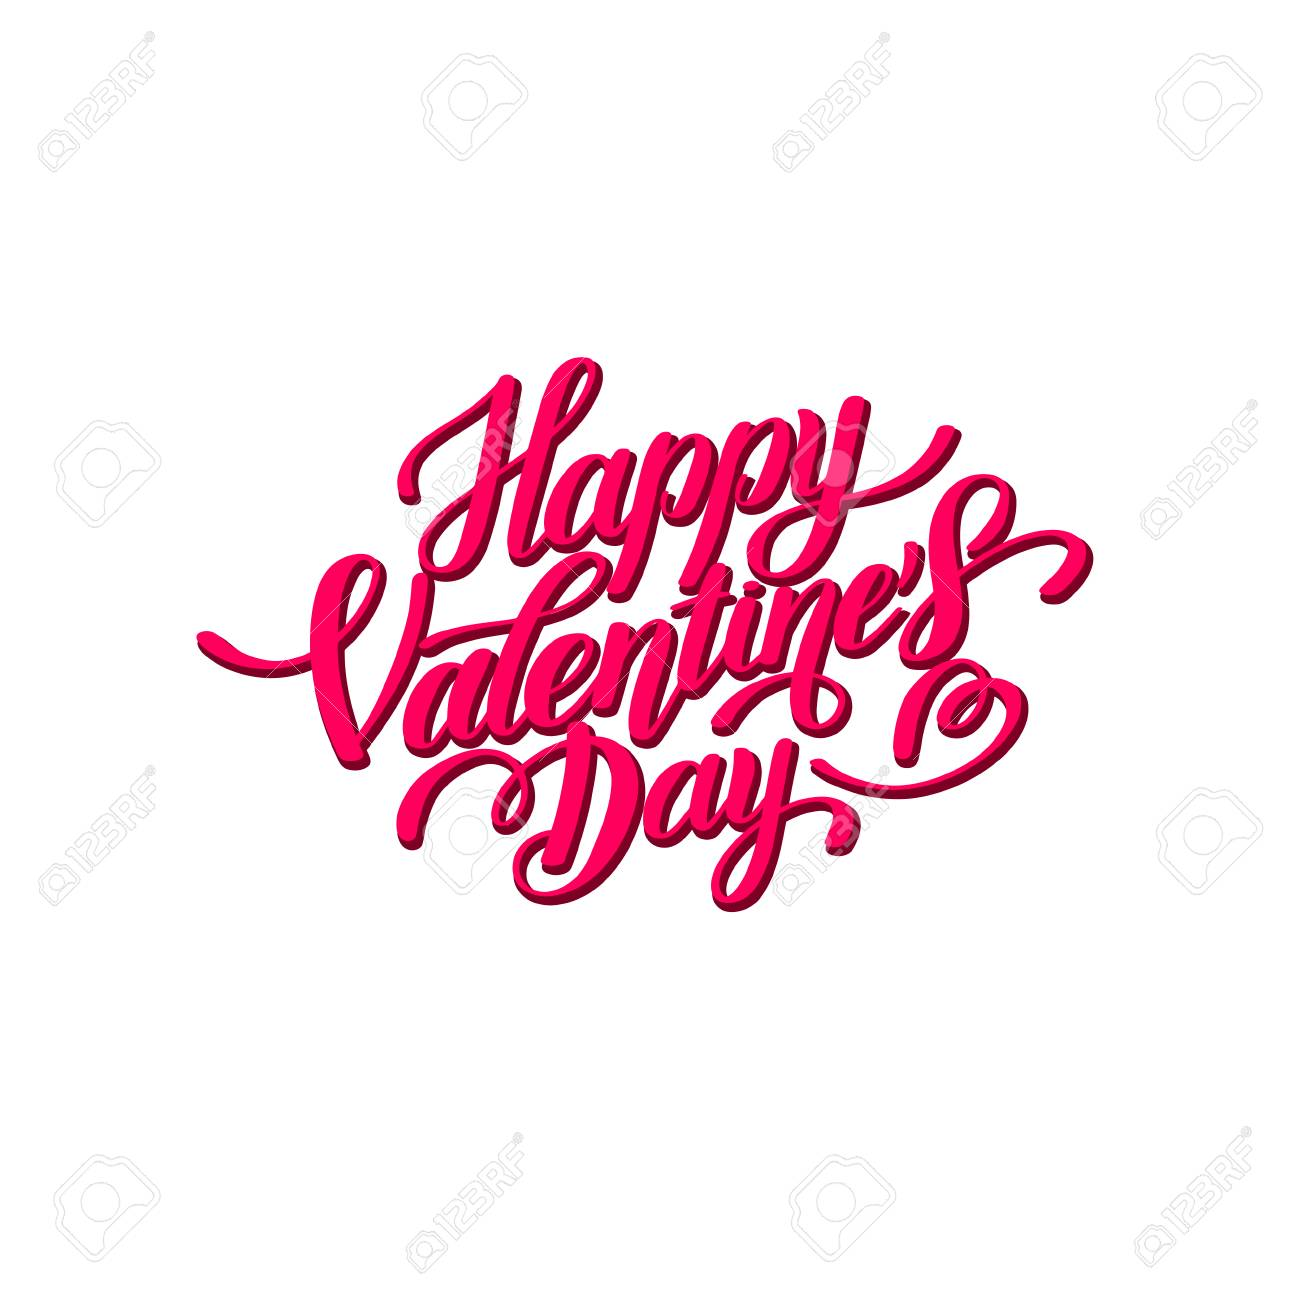 Happy Valentines Day Handwritten Lettering Holiday Design Royalty